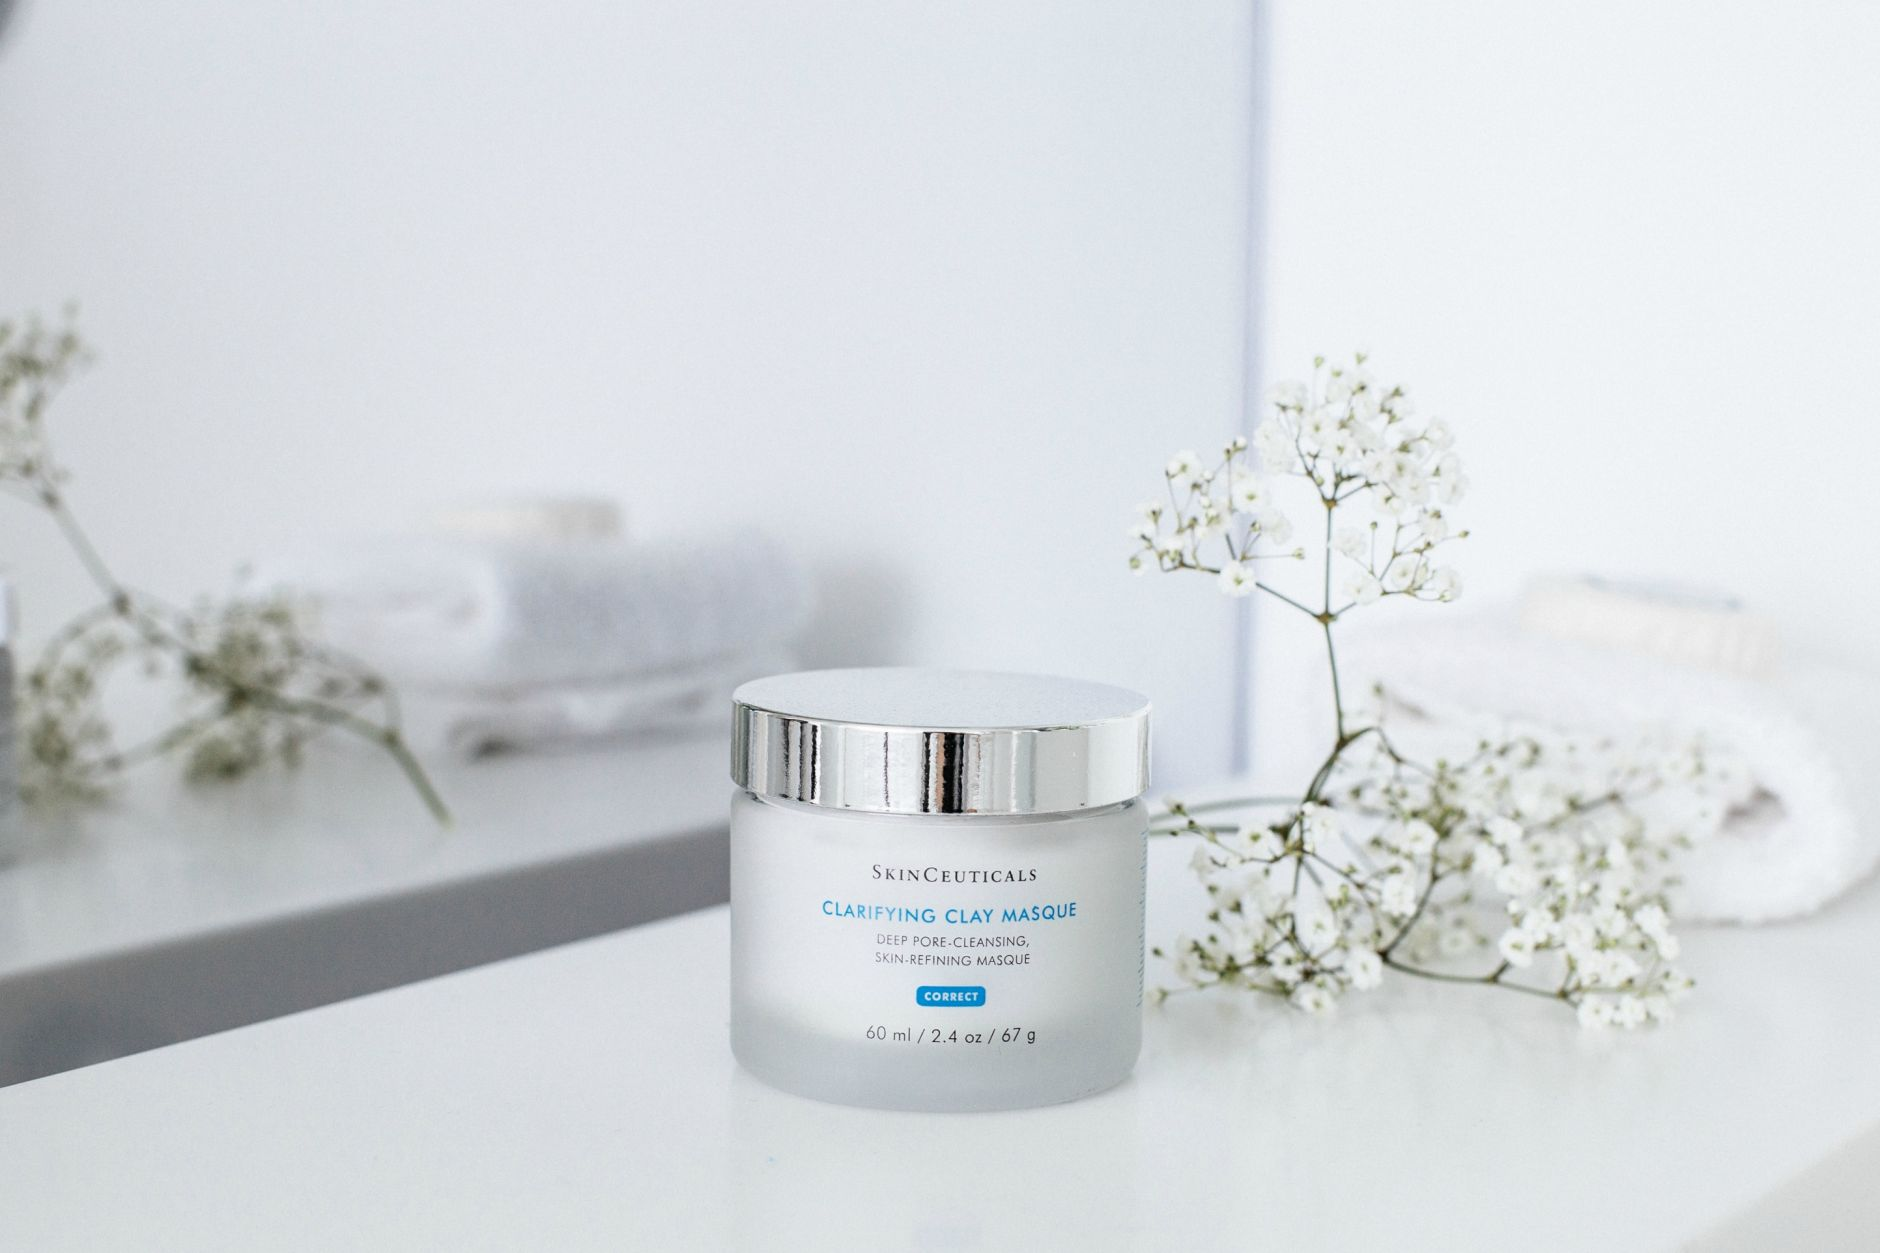 SkinCeuticals-Clarifying-Clay-Masque-Disi-Couture